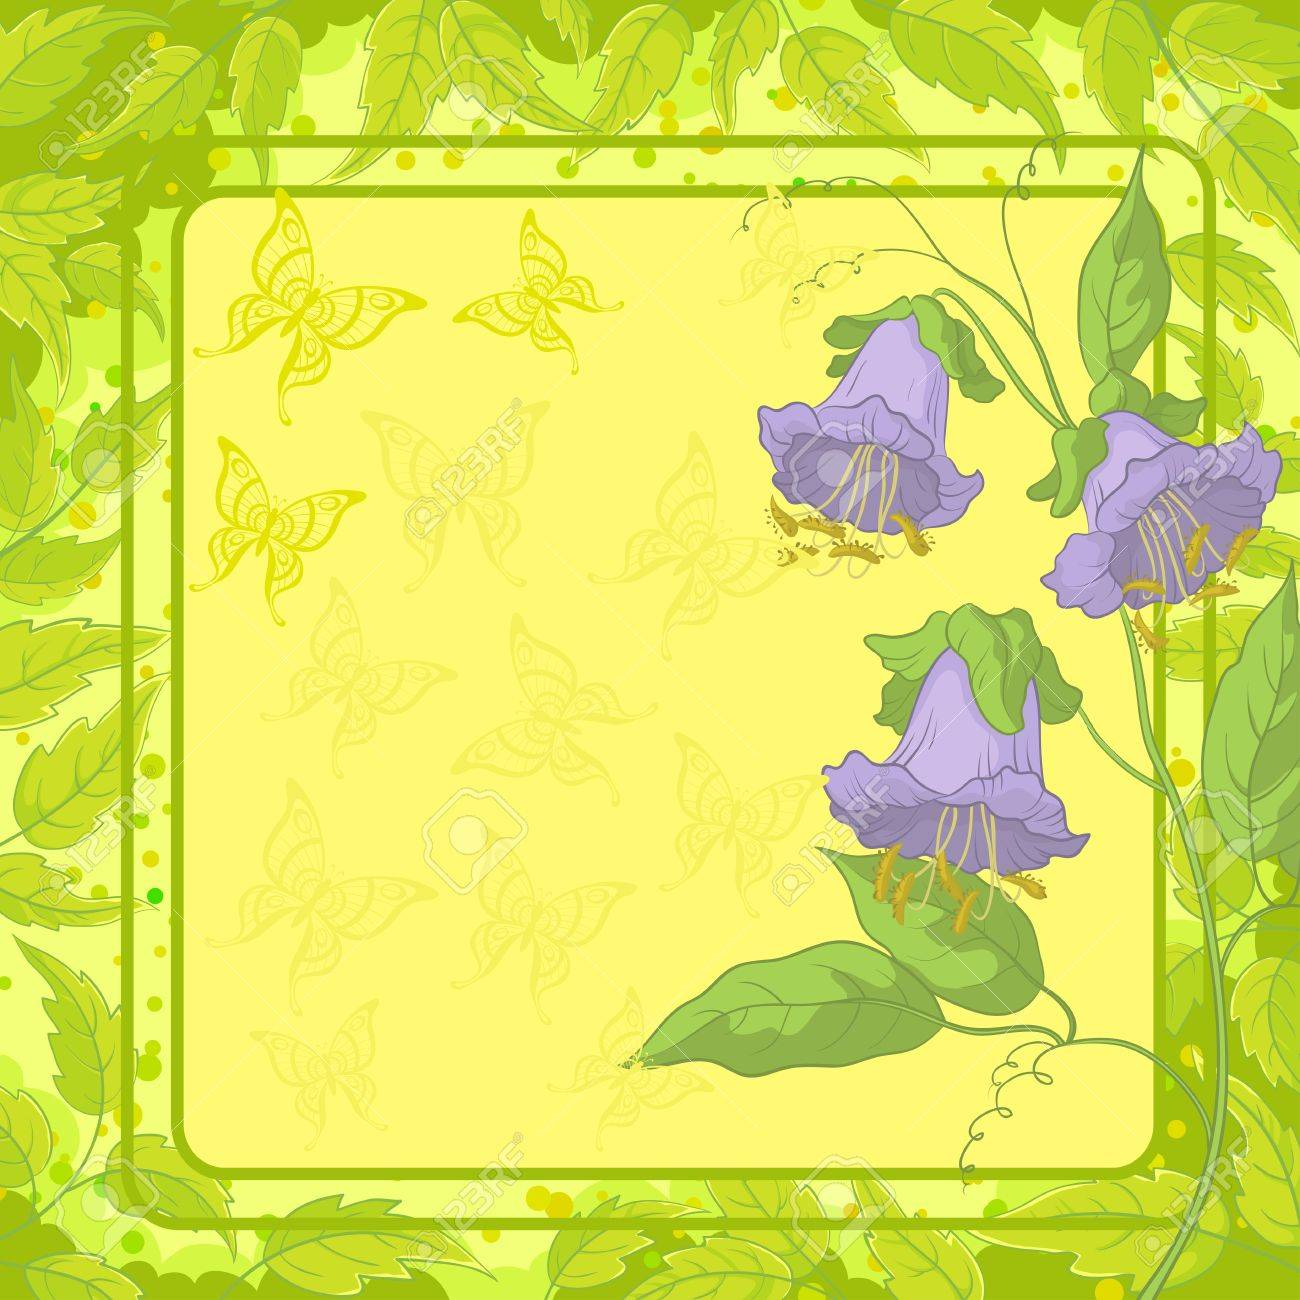 Kobe flowers on yellow background with frame, butterfly and green leaves illustration Stock Vector - 13599761